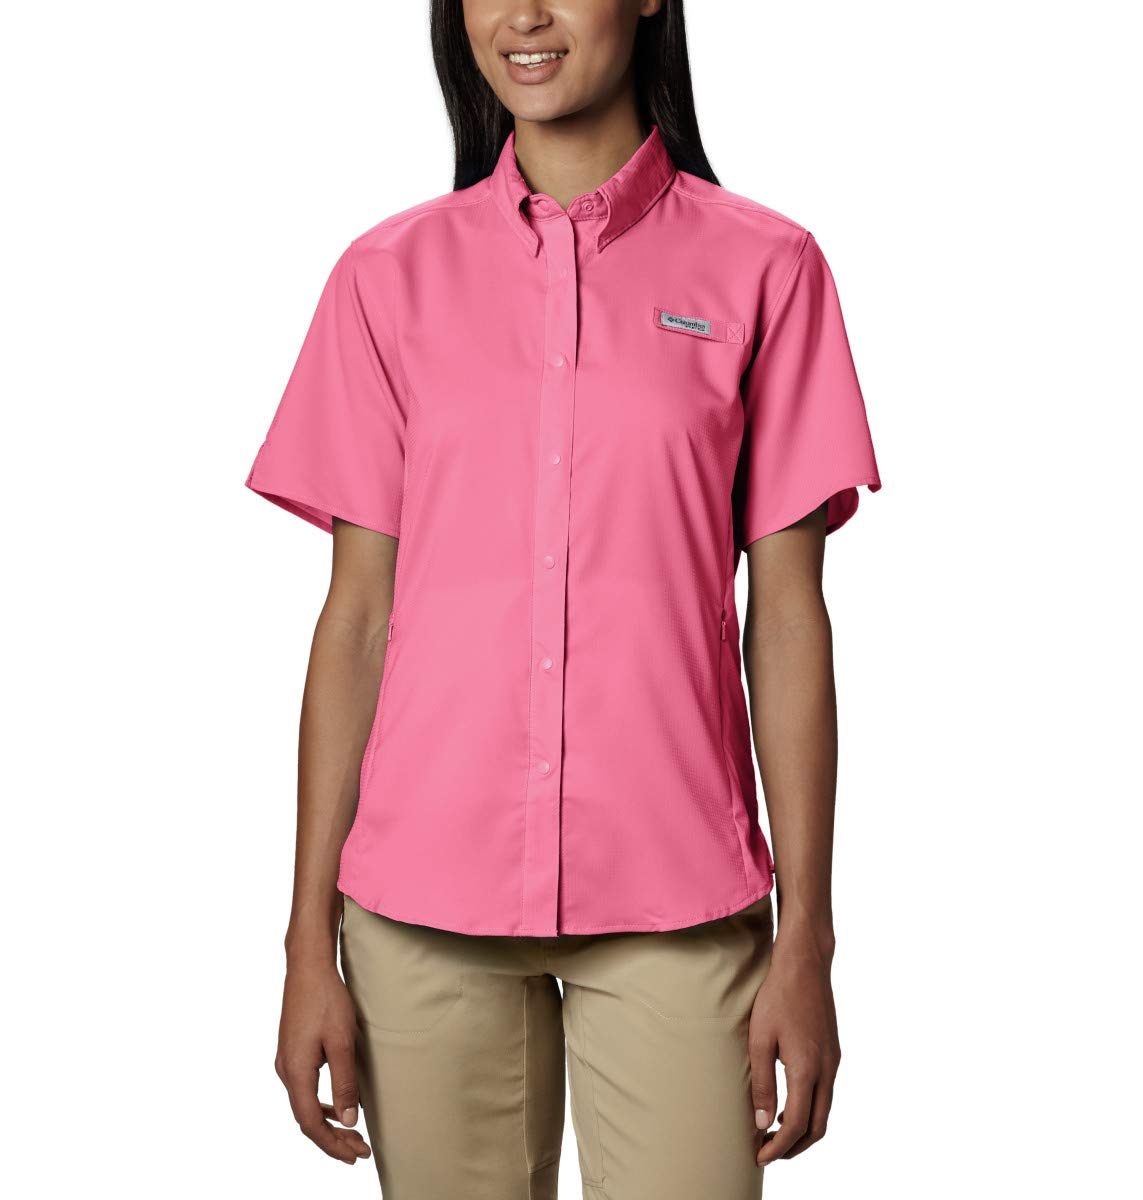 Columbia Women's PFG Tamiami II Short Sleeve Shirt , Lollipop, X-Small by Columbia